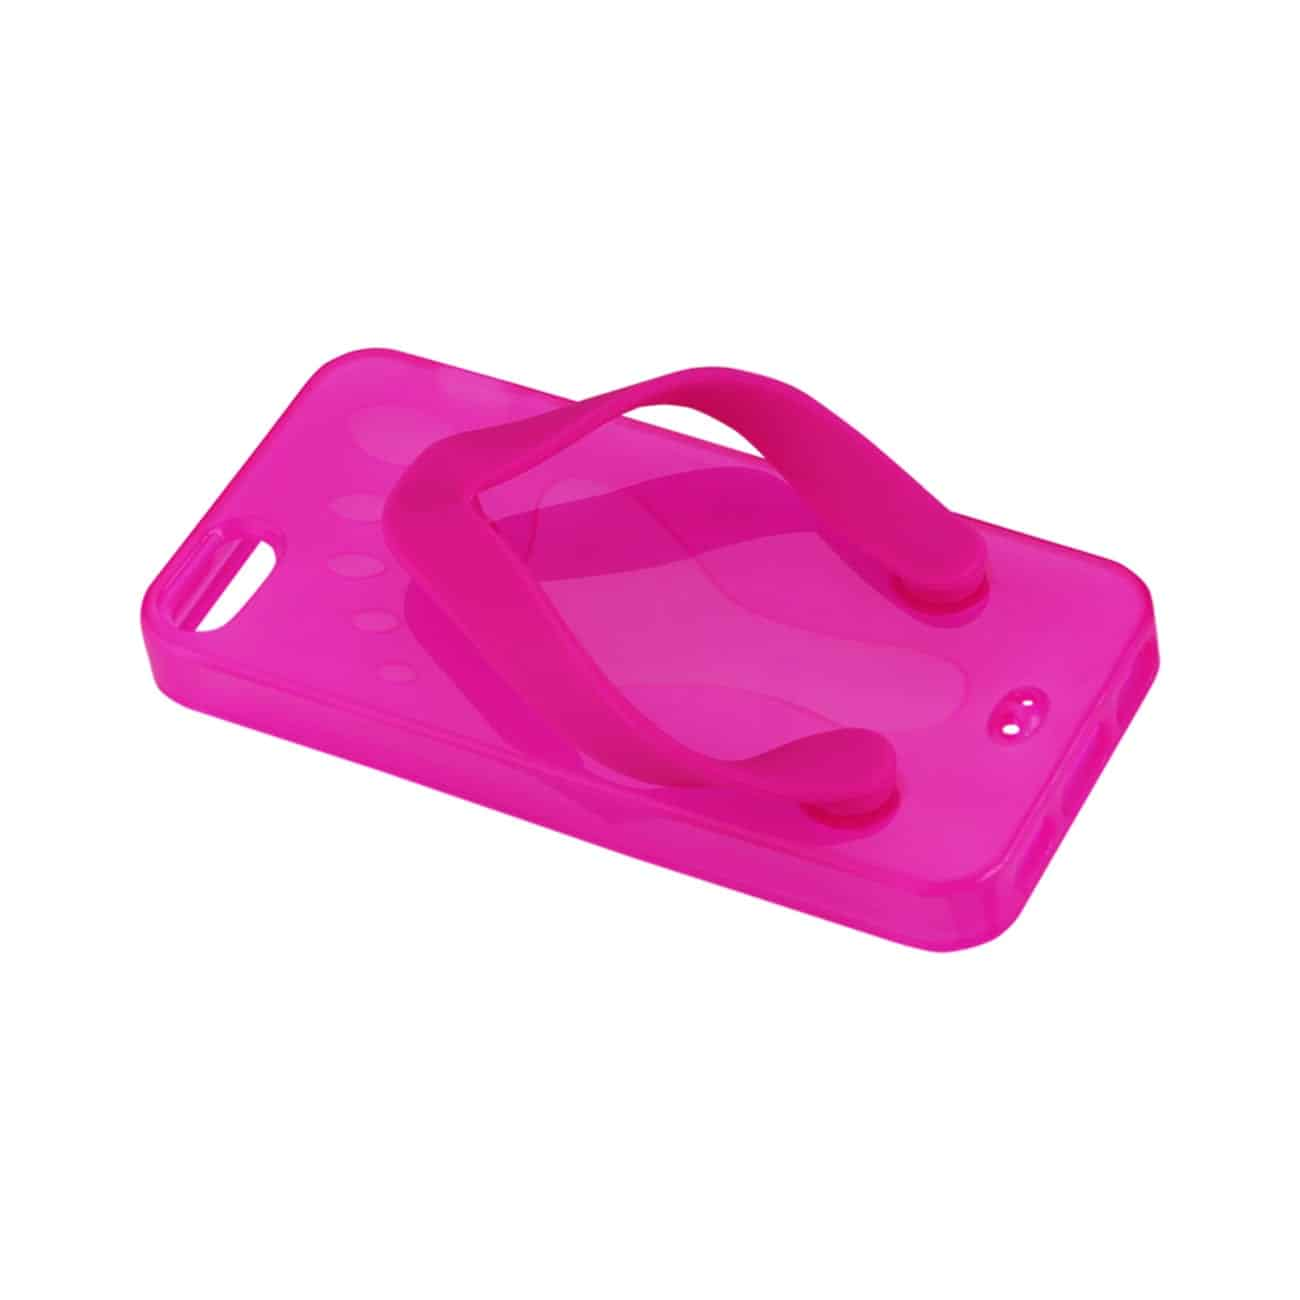 IPHONE SE/ 5S/ 5 SILICONE SLIPPER SANDAL CASE IN HOT PINK